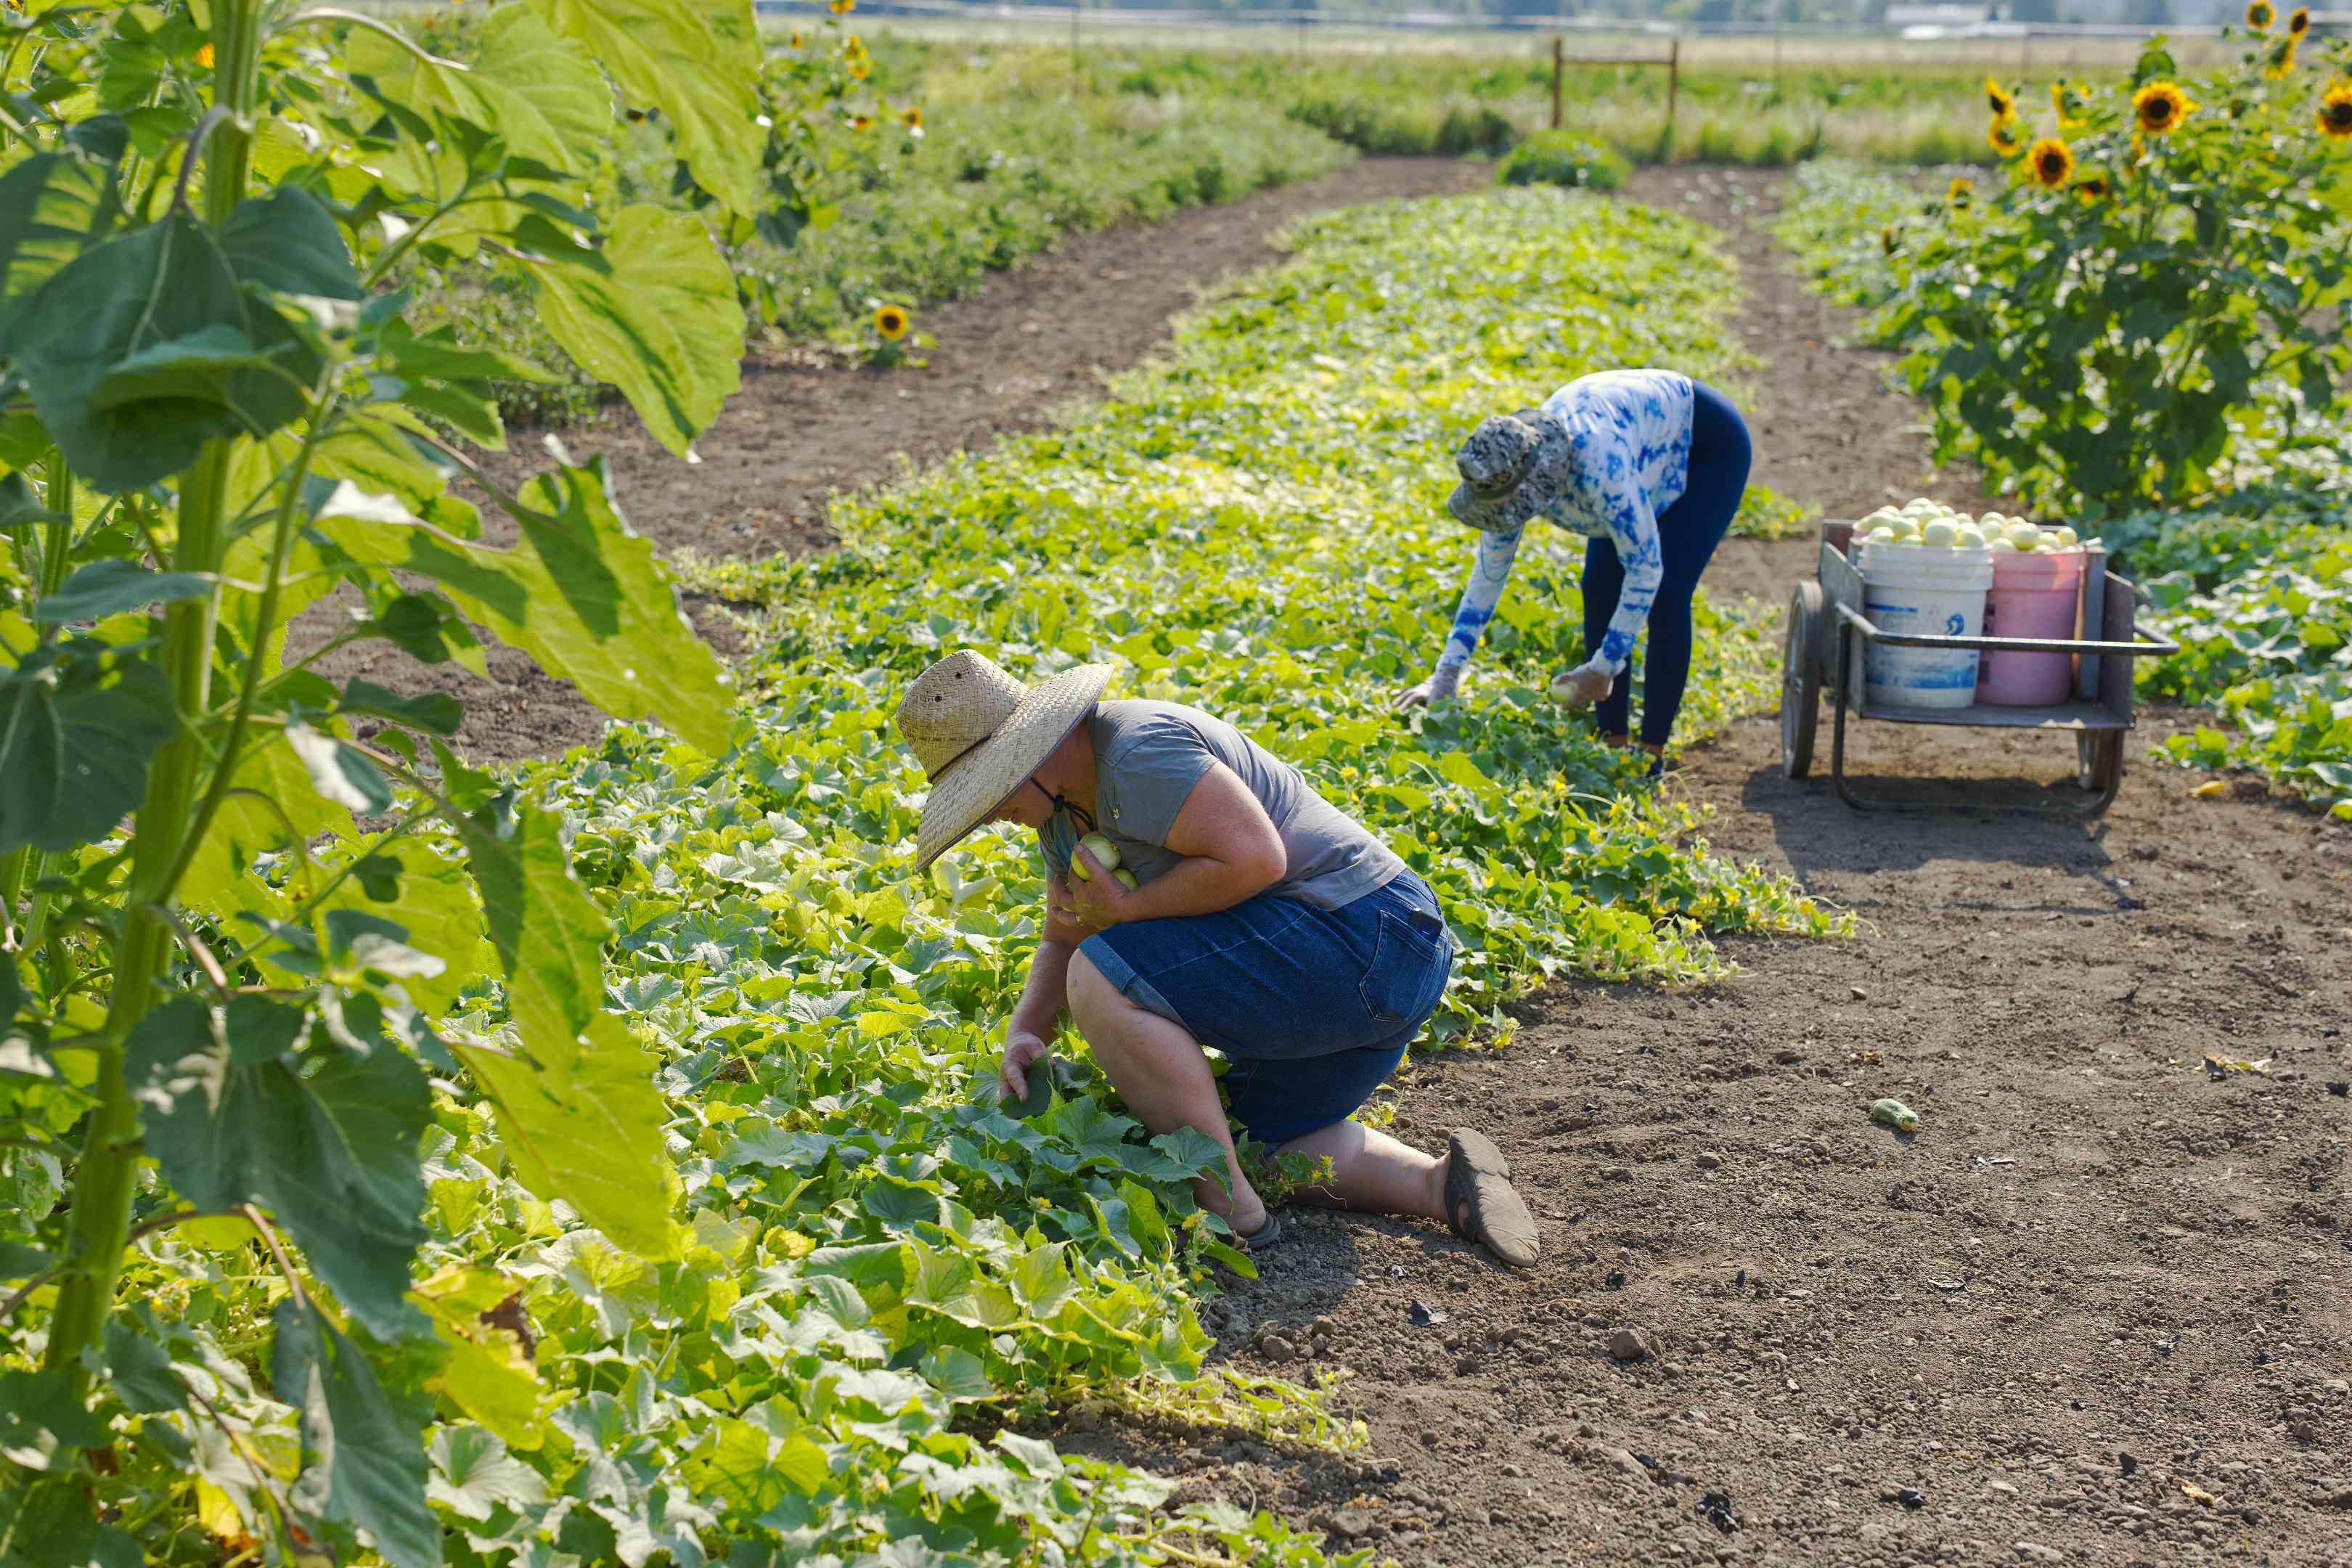 two women stoop over and hand pick vegetables on small commercial farm